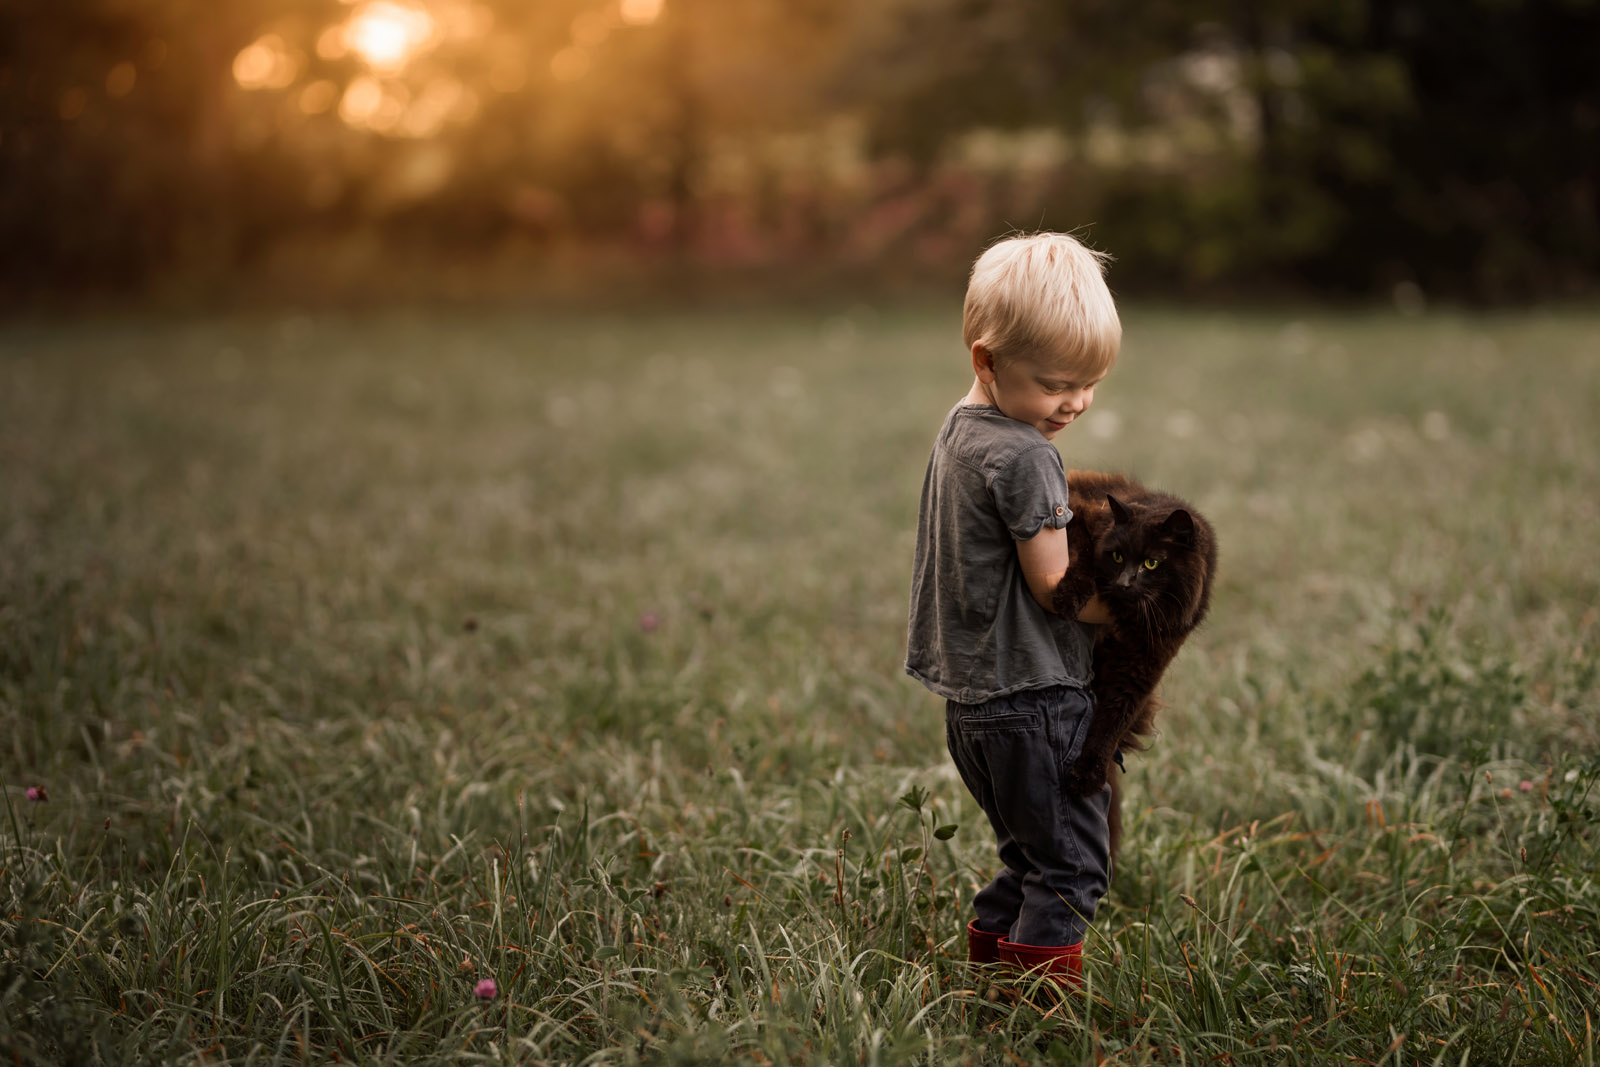 photographing pets small boy carrying large cat in grass by meg loeks